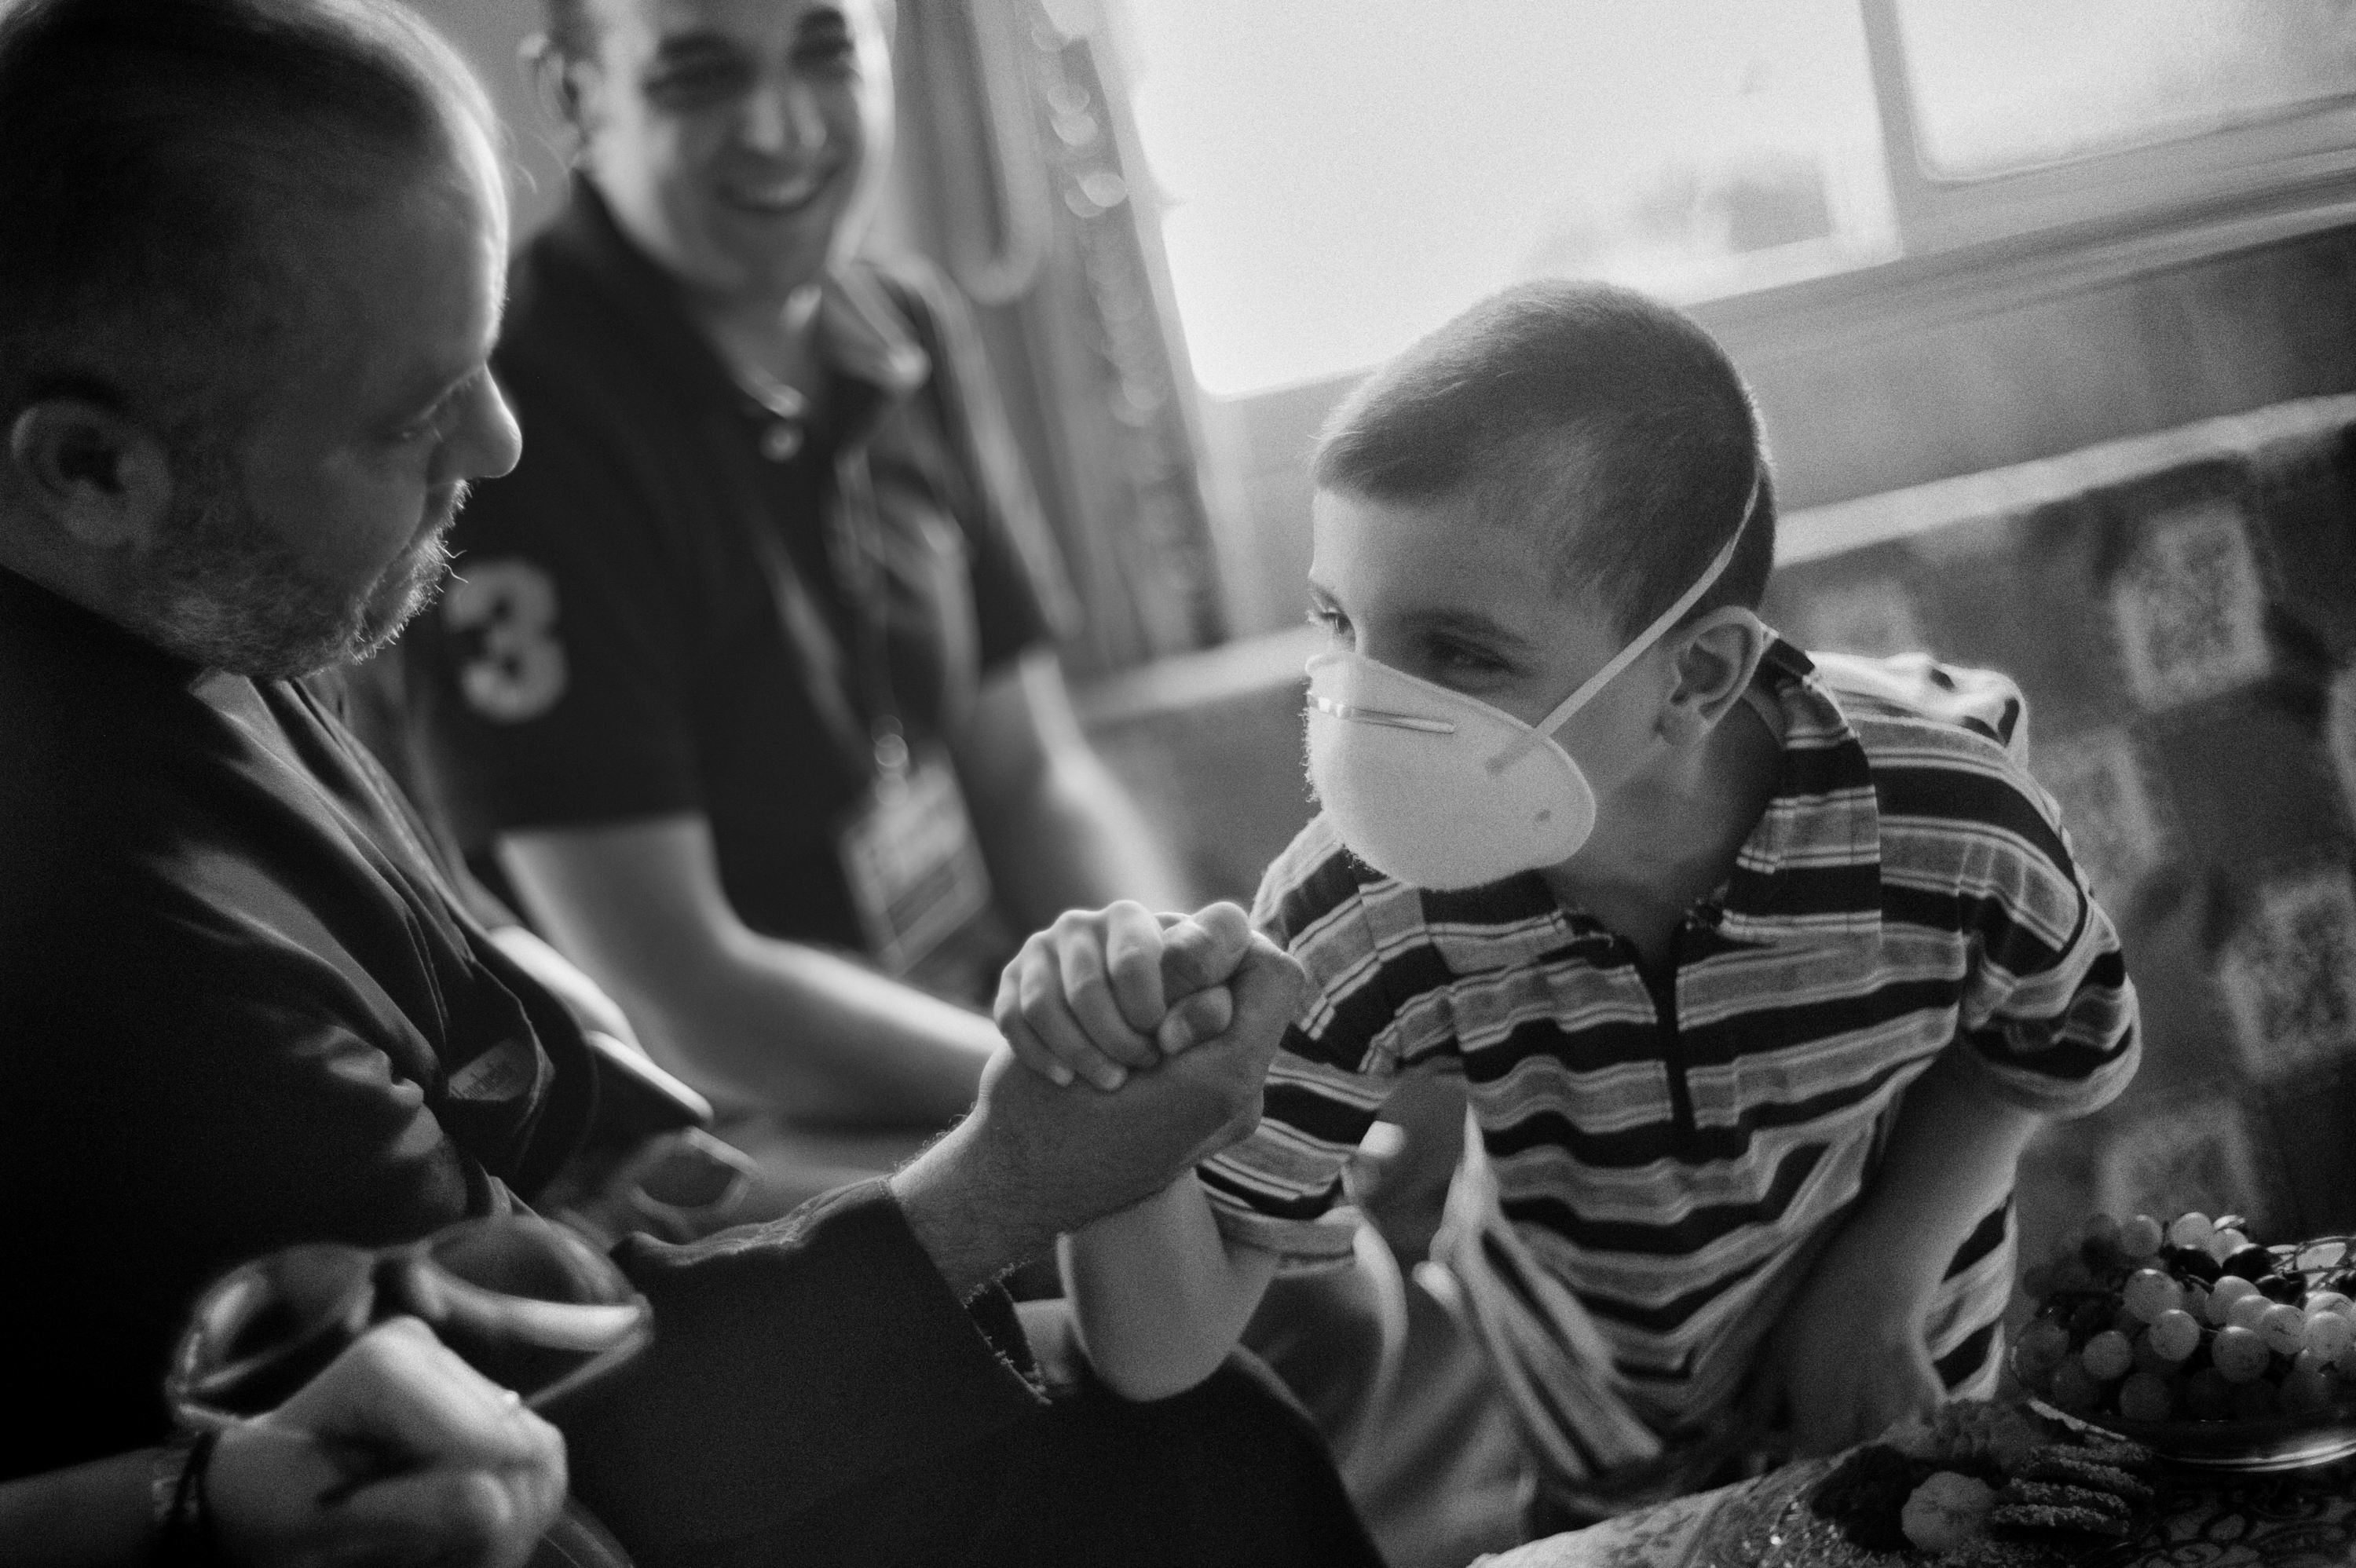 Suhil, who had to travel to Damascus each month for his chemo therapy (photo: Eddy van Wessel)